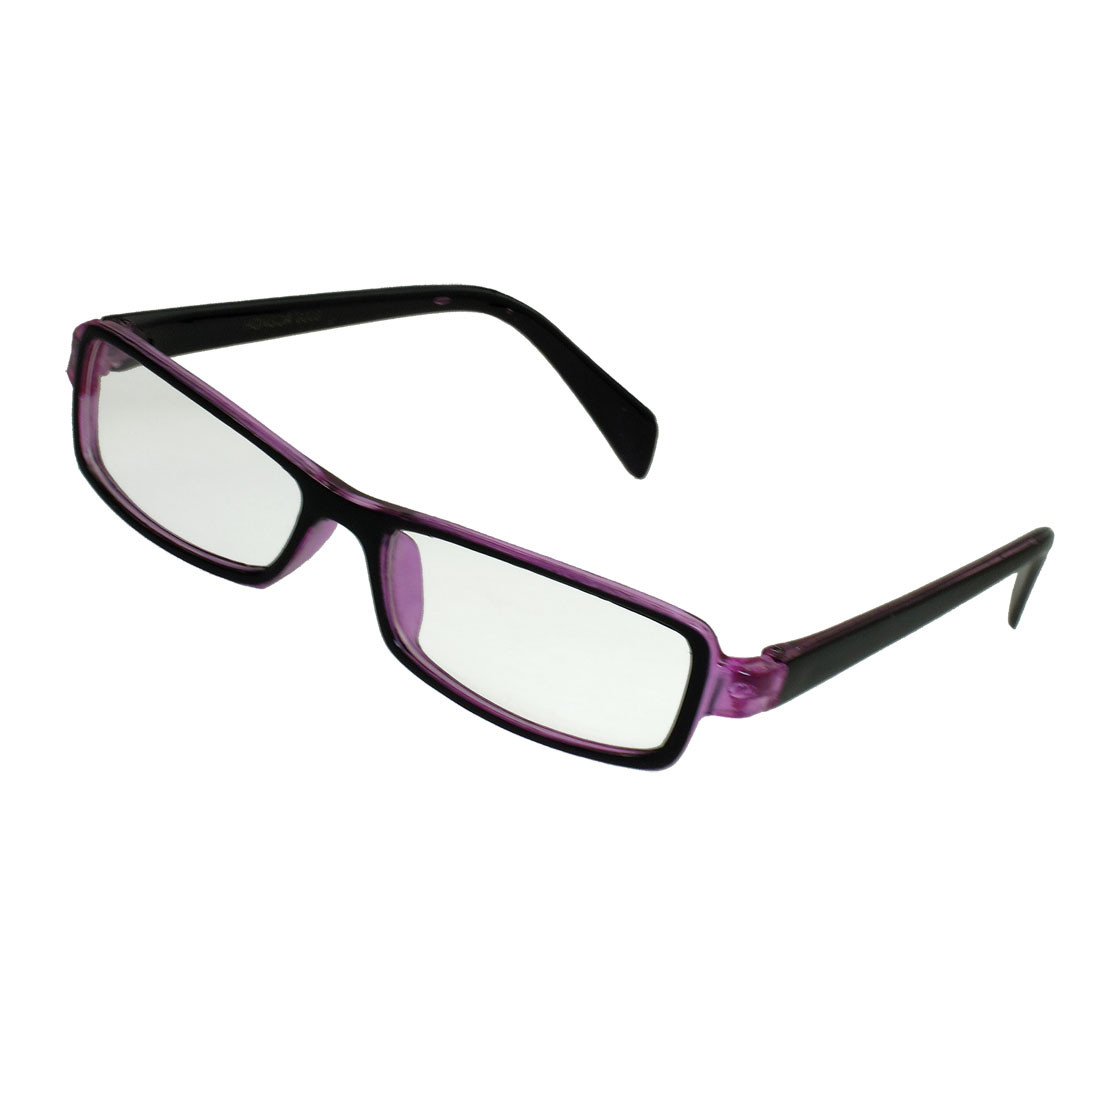 Black Purple Frame Full Rim Clear Lens Plano Glasses Spectacles Women Men